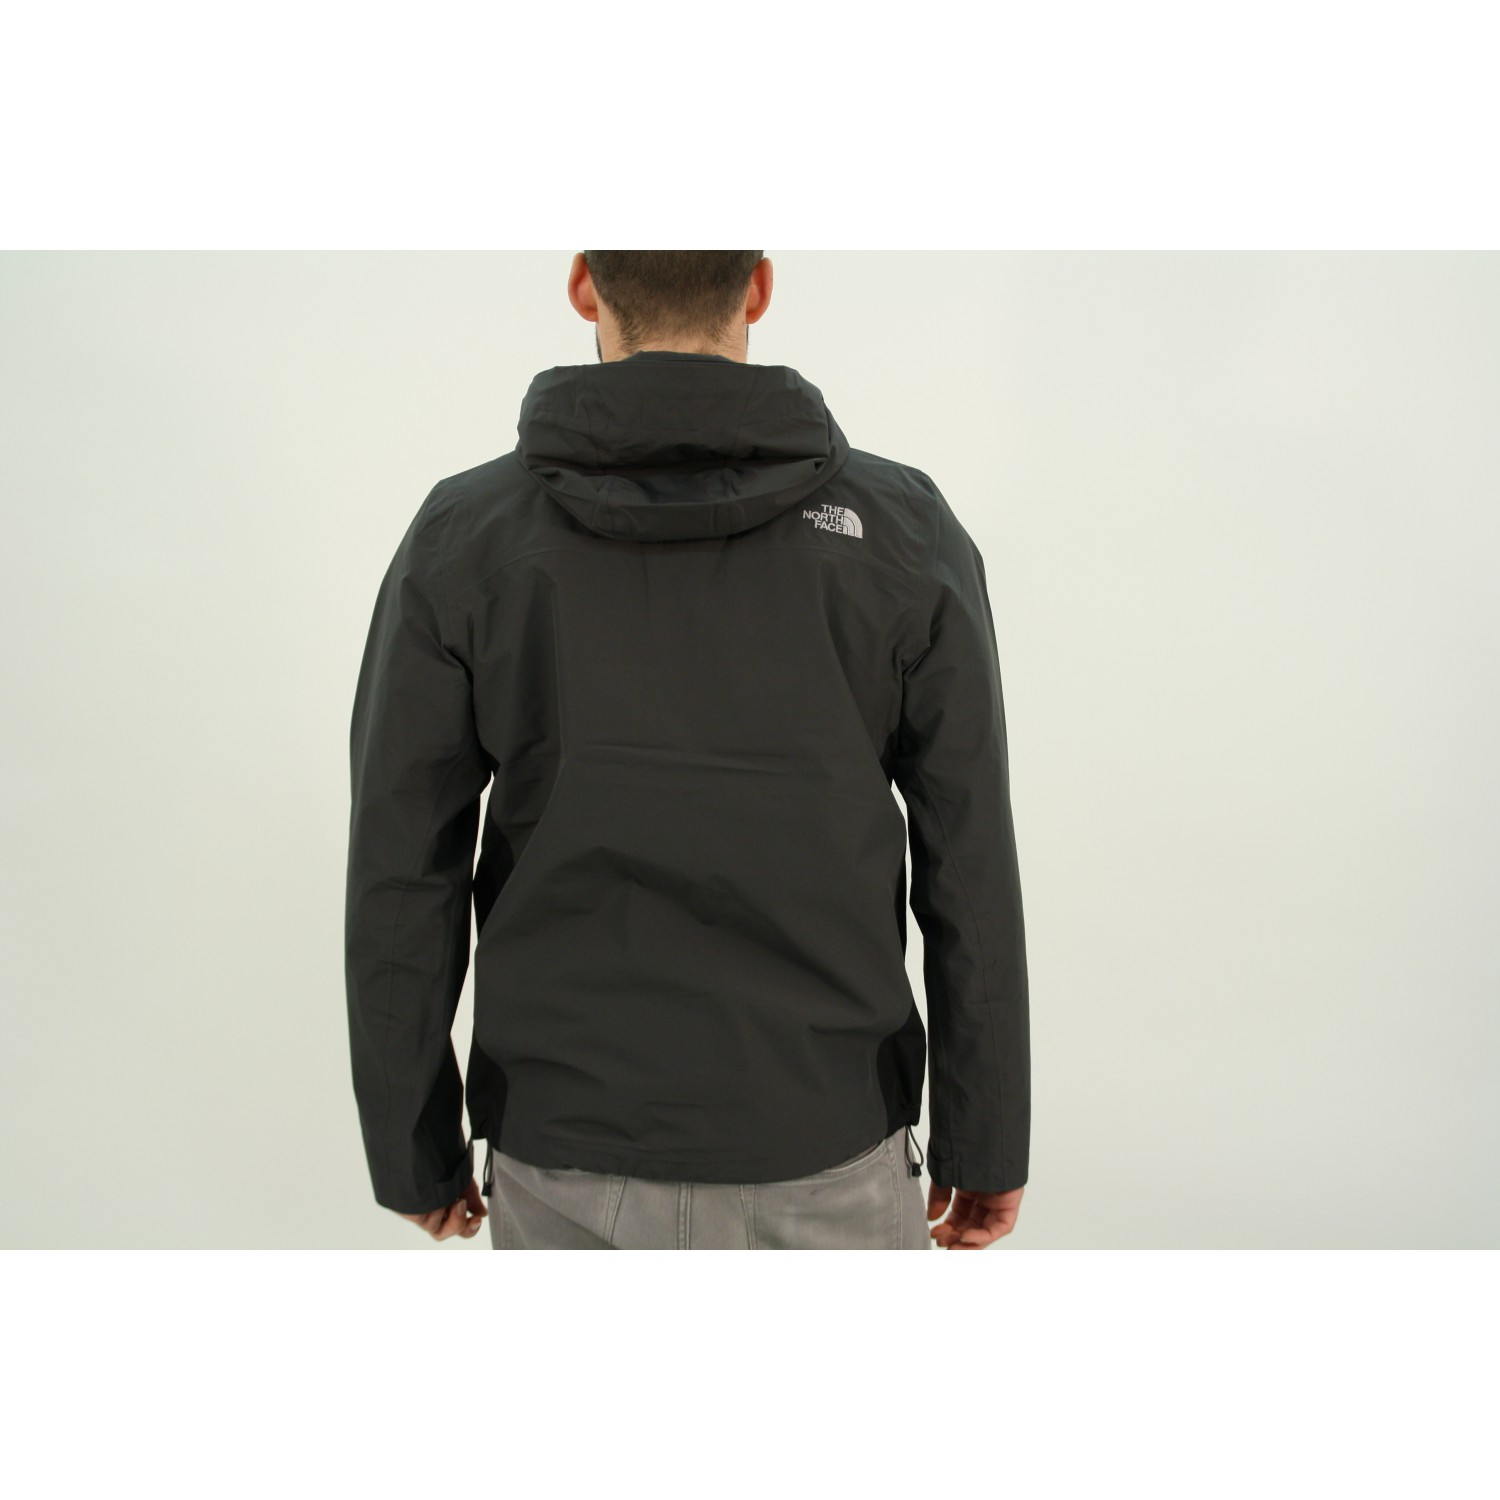 separation shoes ff74a 2bcfa The North Face - Sangro Jacket - Hardshelljacke